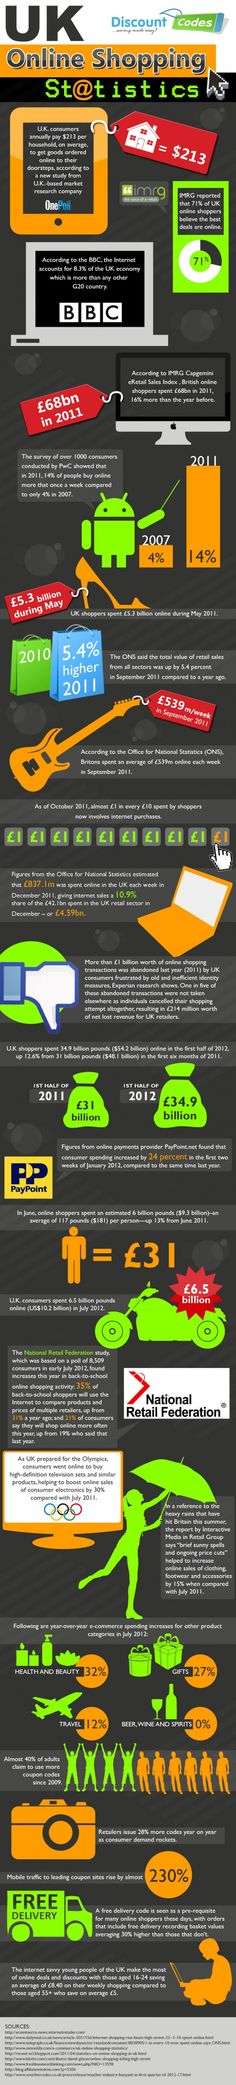 Infographic online shopping UK.jpg (594×5249)